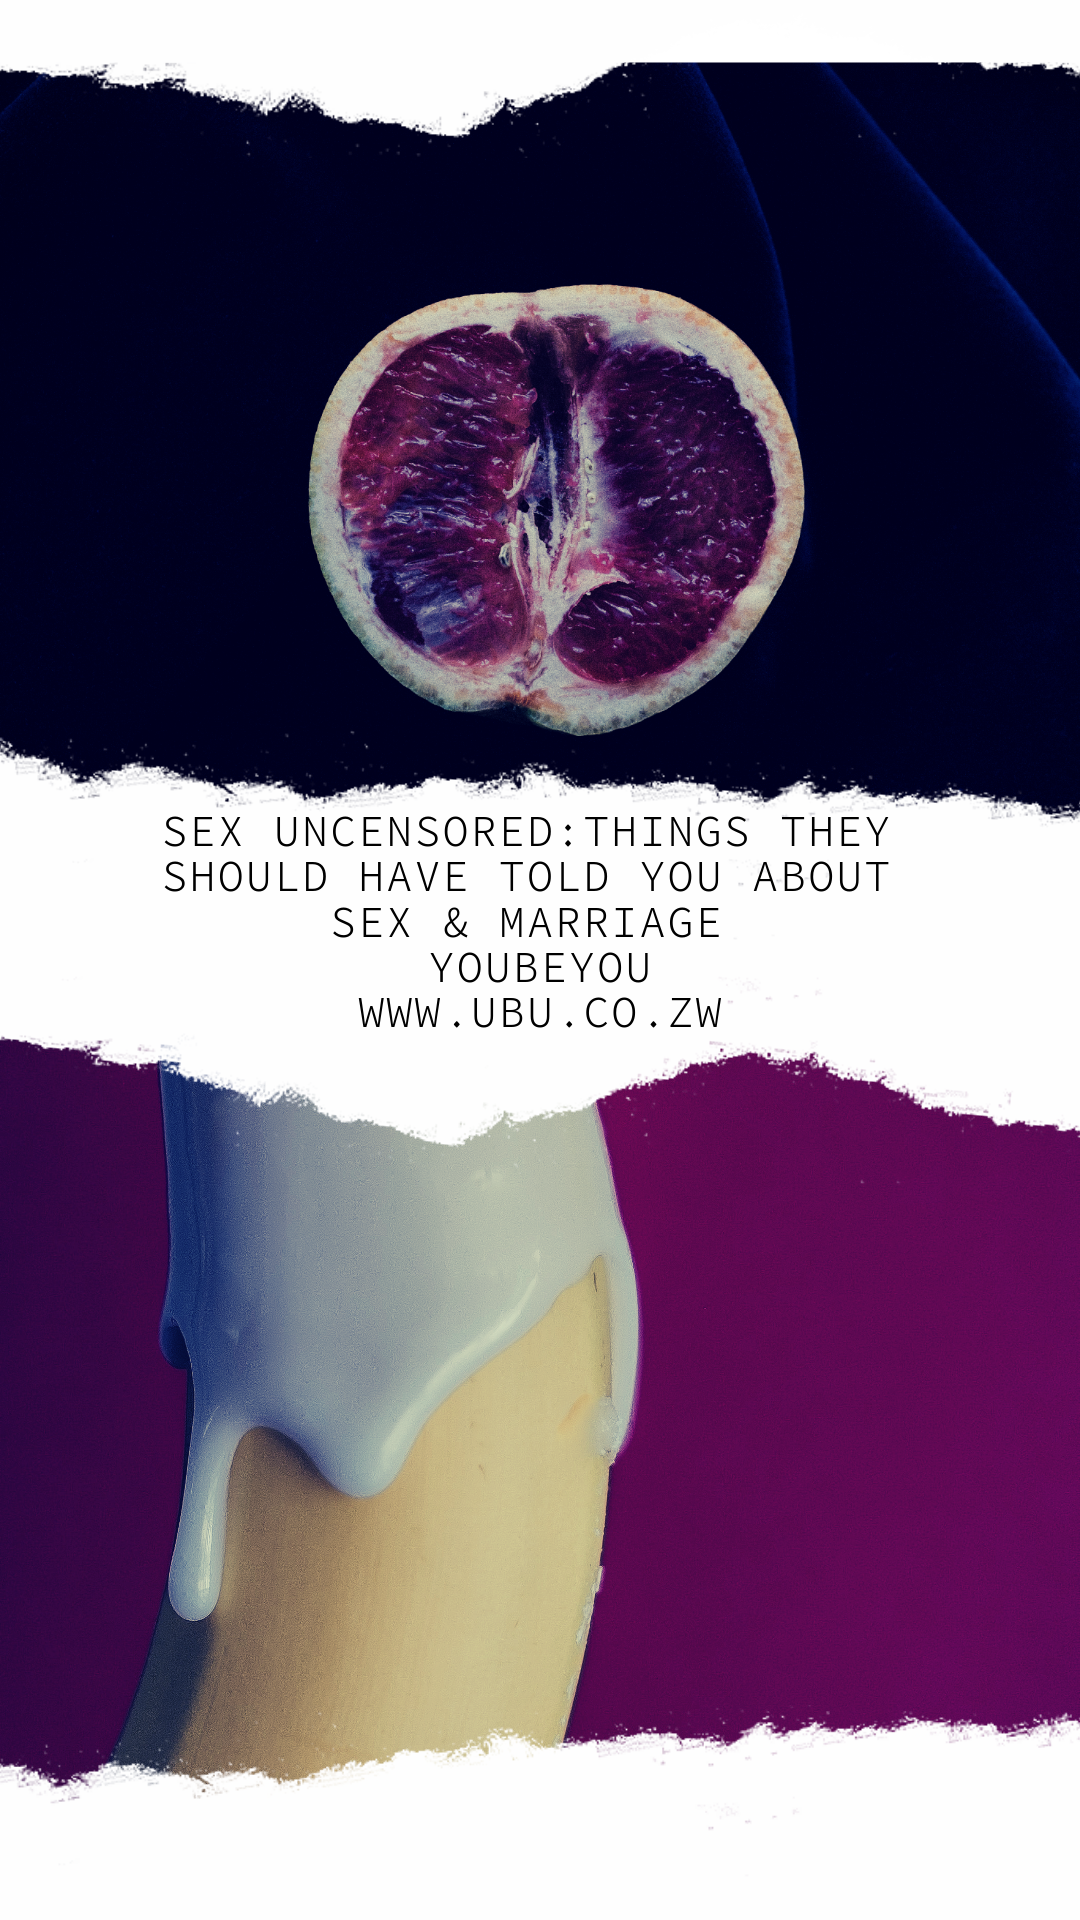 SEX & THE FIRST LETTER OF YOUR NAME…